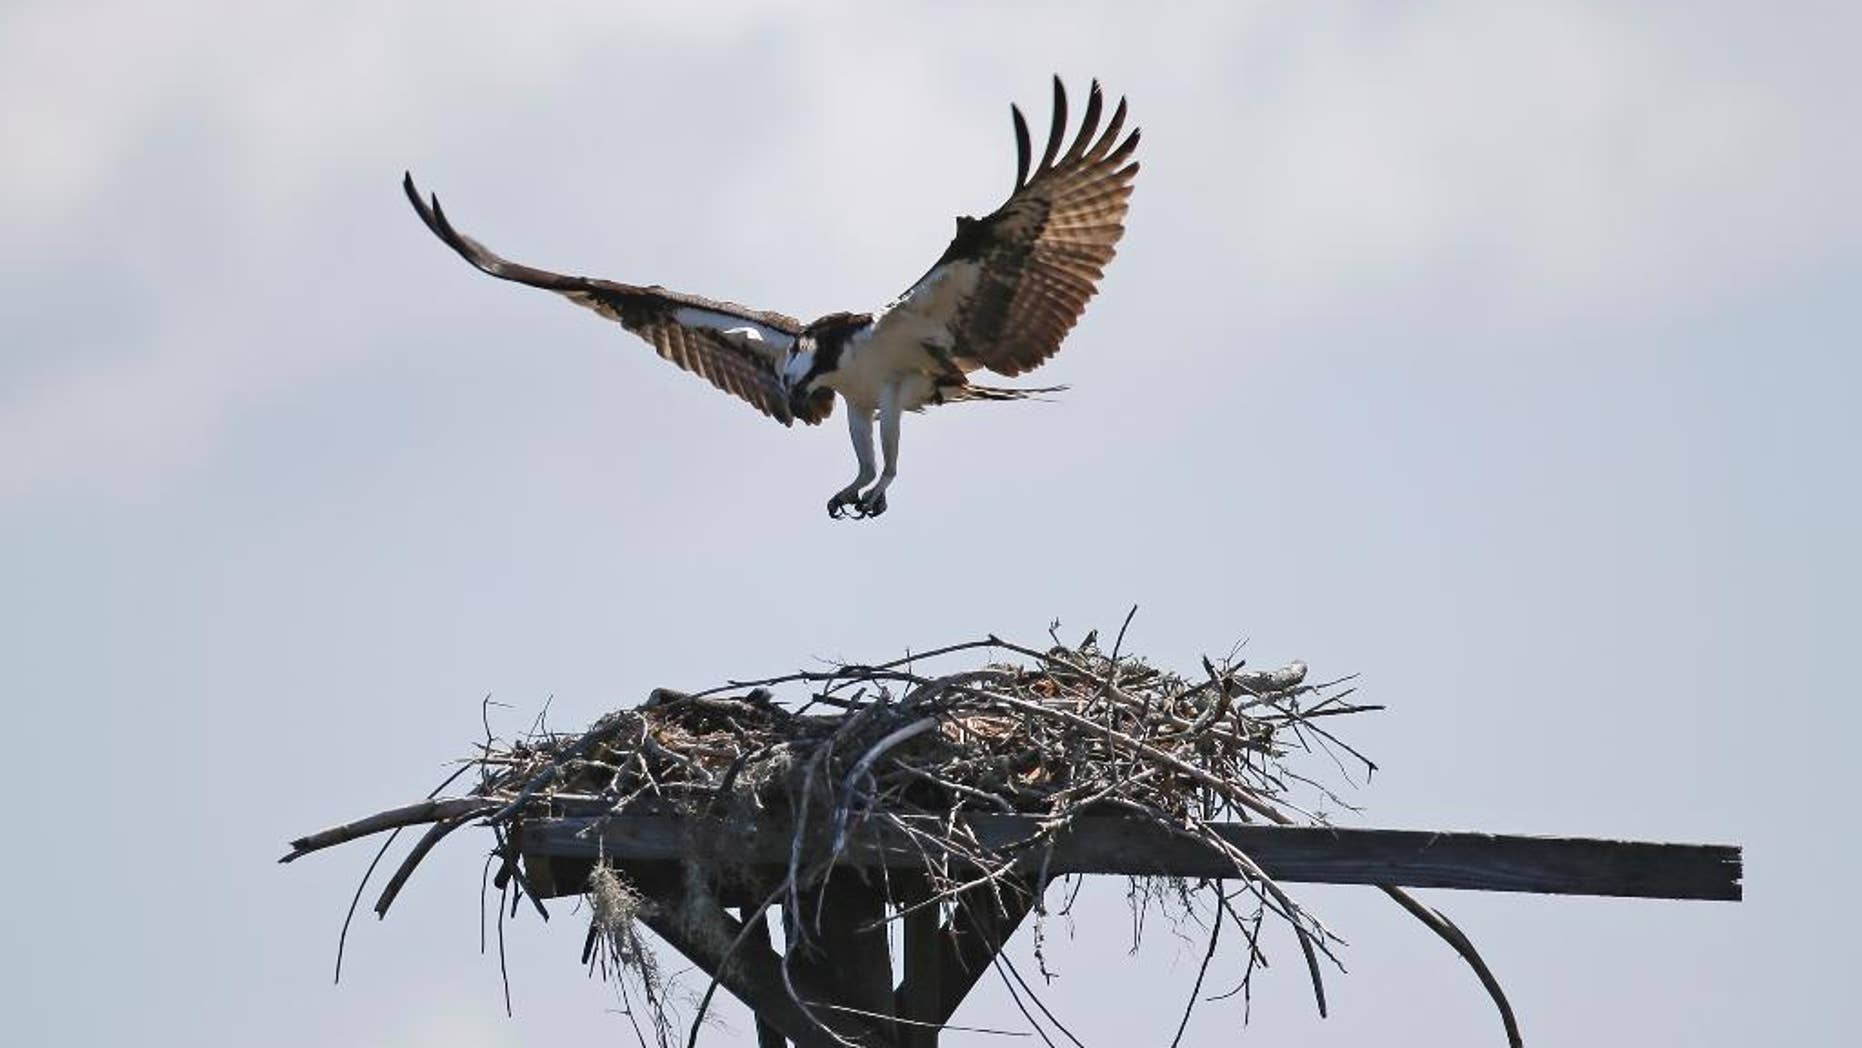 """In this Friday, June 19, 2015 photo, In this Friday, June 19, 2015 photo, an Osprey returns to its nest in Seahorse Key, off Florida's Gulf Coast. In May, Seahorse Key fell eerily quiet, as thousands of birds suddenly disappeared, and biologists are trying to find the reason why. U.S. Fish and Wildlife Service biologist Vic Doig said what was once the largest bird colony on the state's Gulf Coast is now a """"dead zone.""""   (AP Photo/John Raoux)"""